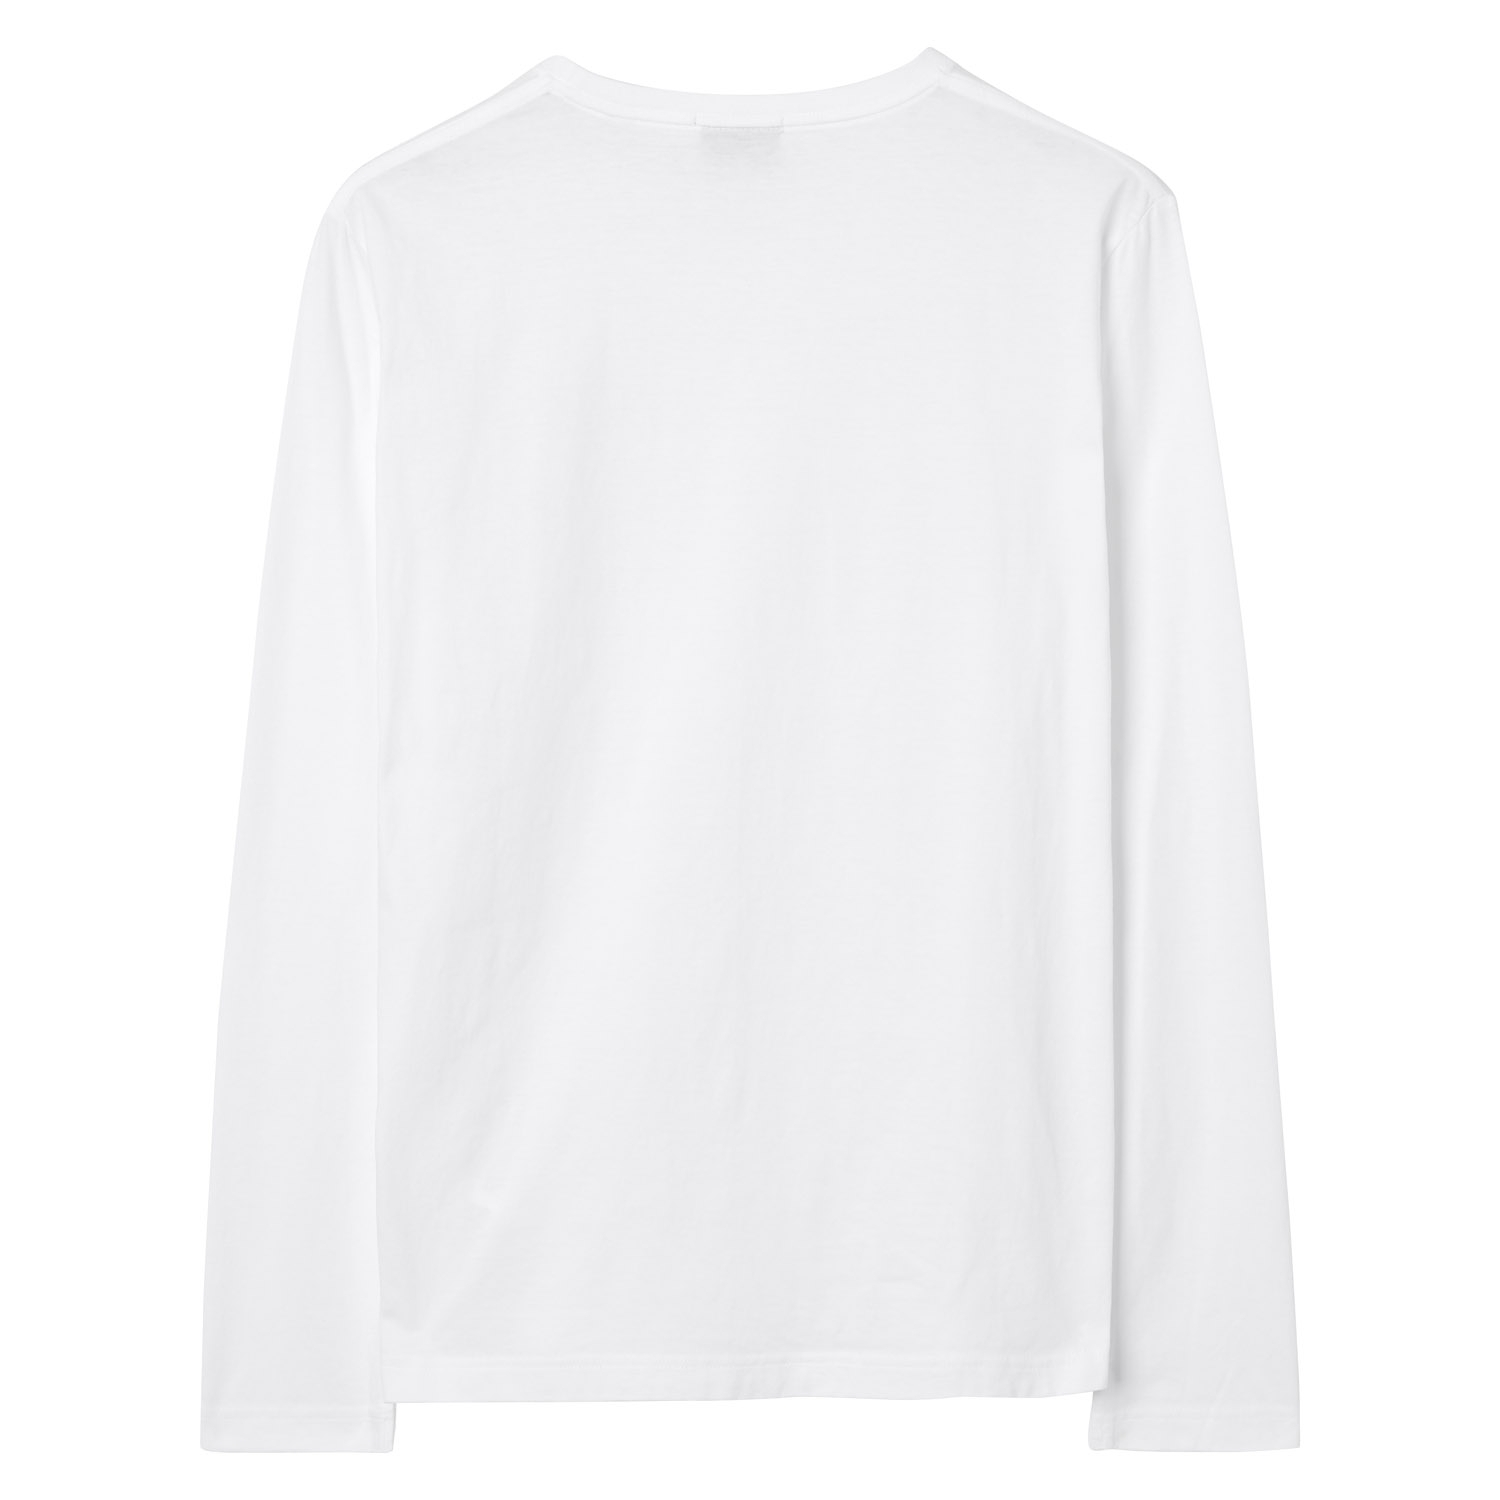 Gant Pullover THE ORIGINAL LS T-SHIRT Rundhals 234502 WHITE SH18-GP3